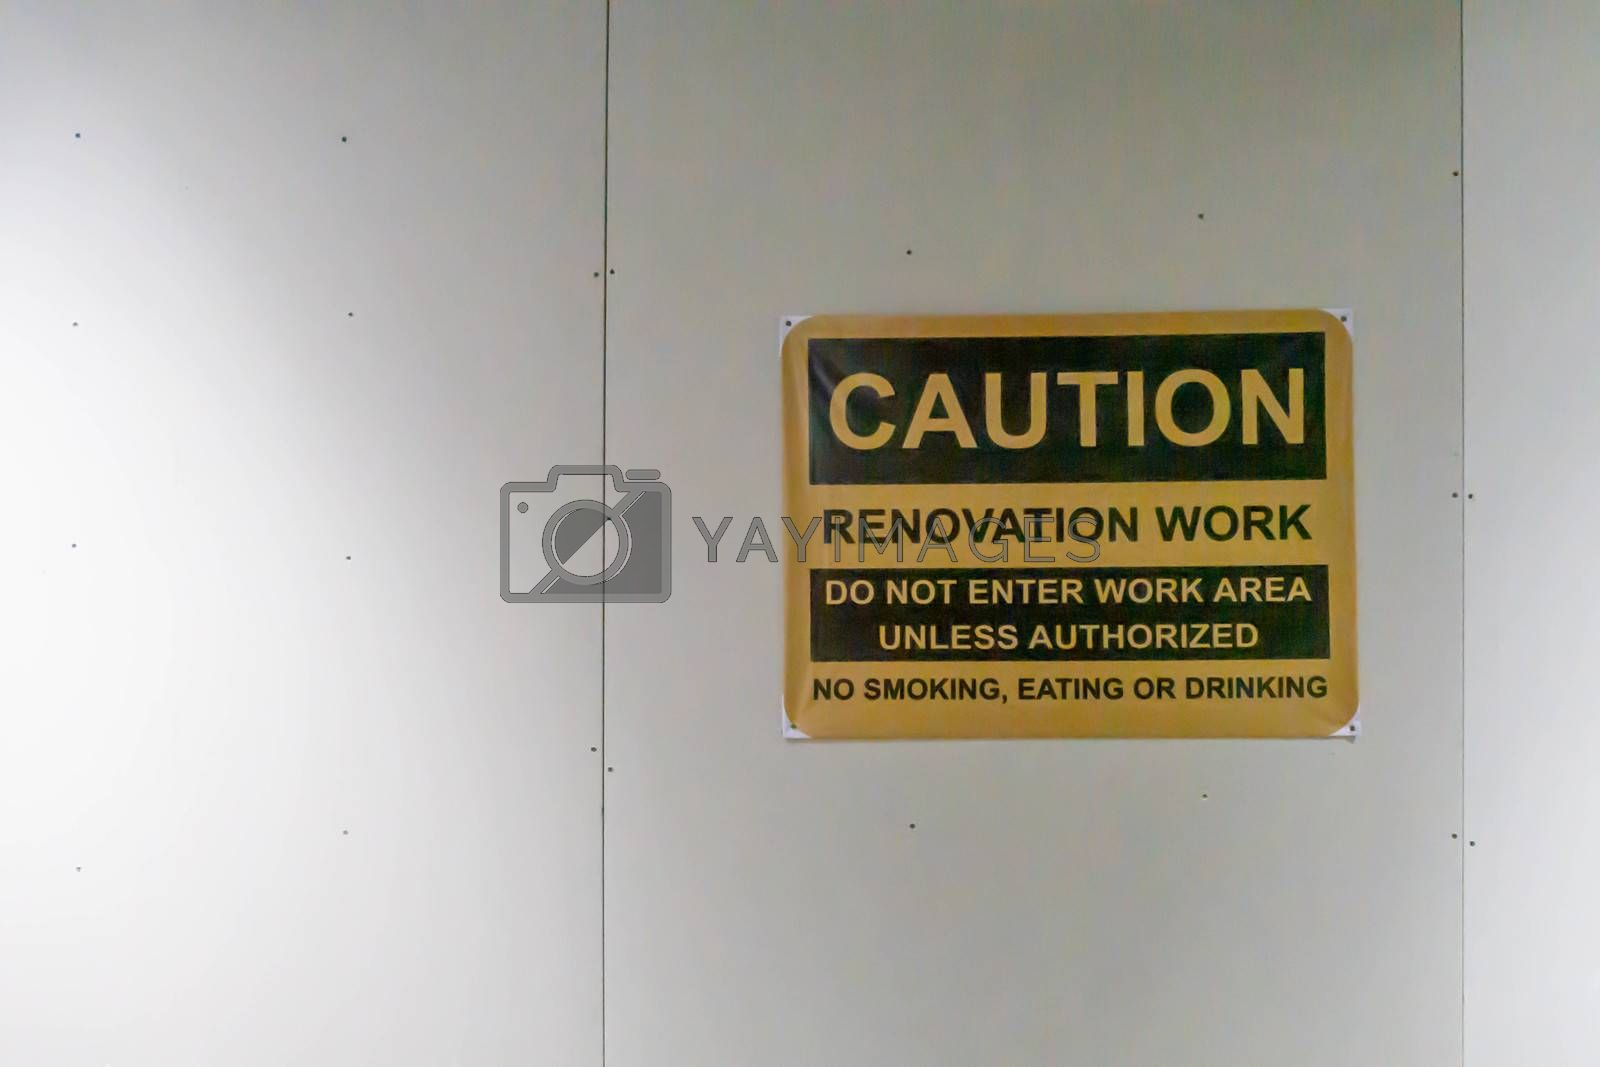 Caution sign board posted on wall for indoor renovation work